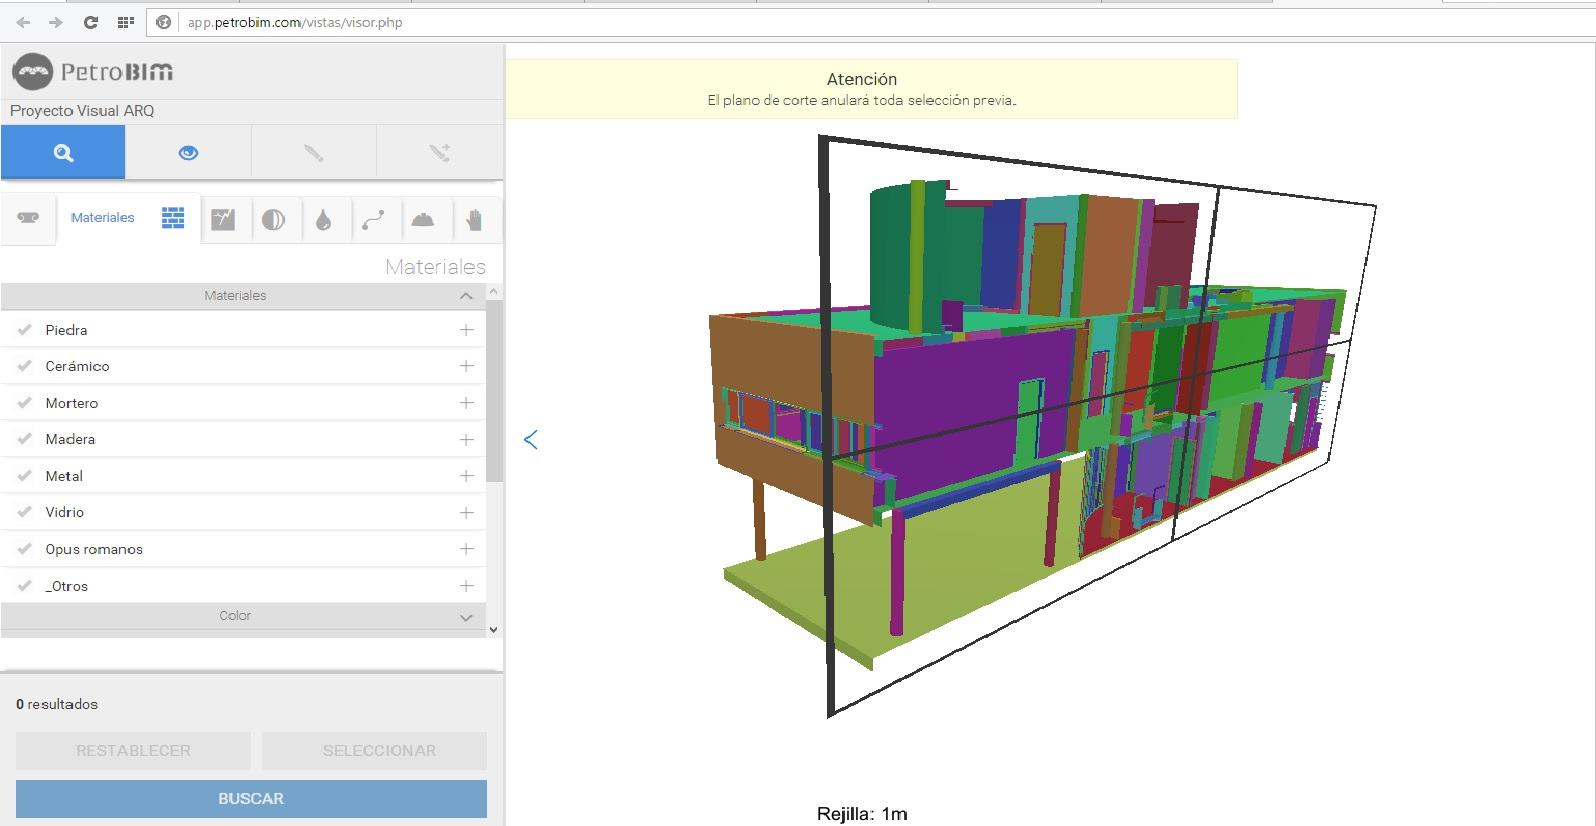 The Ville Savoye project created with VisualARQ seen in section in the PetroBIM application